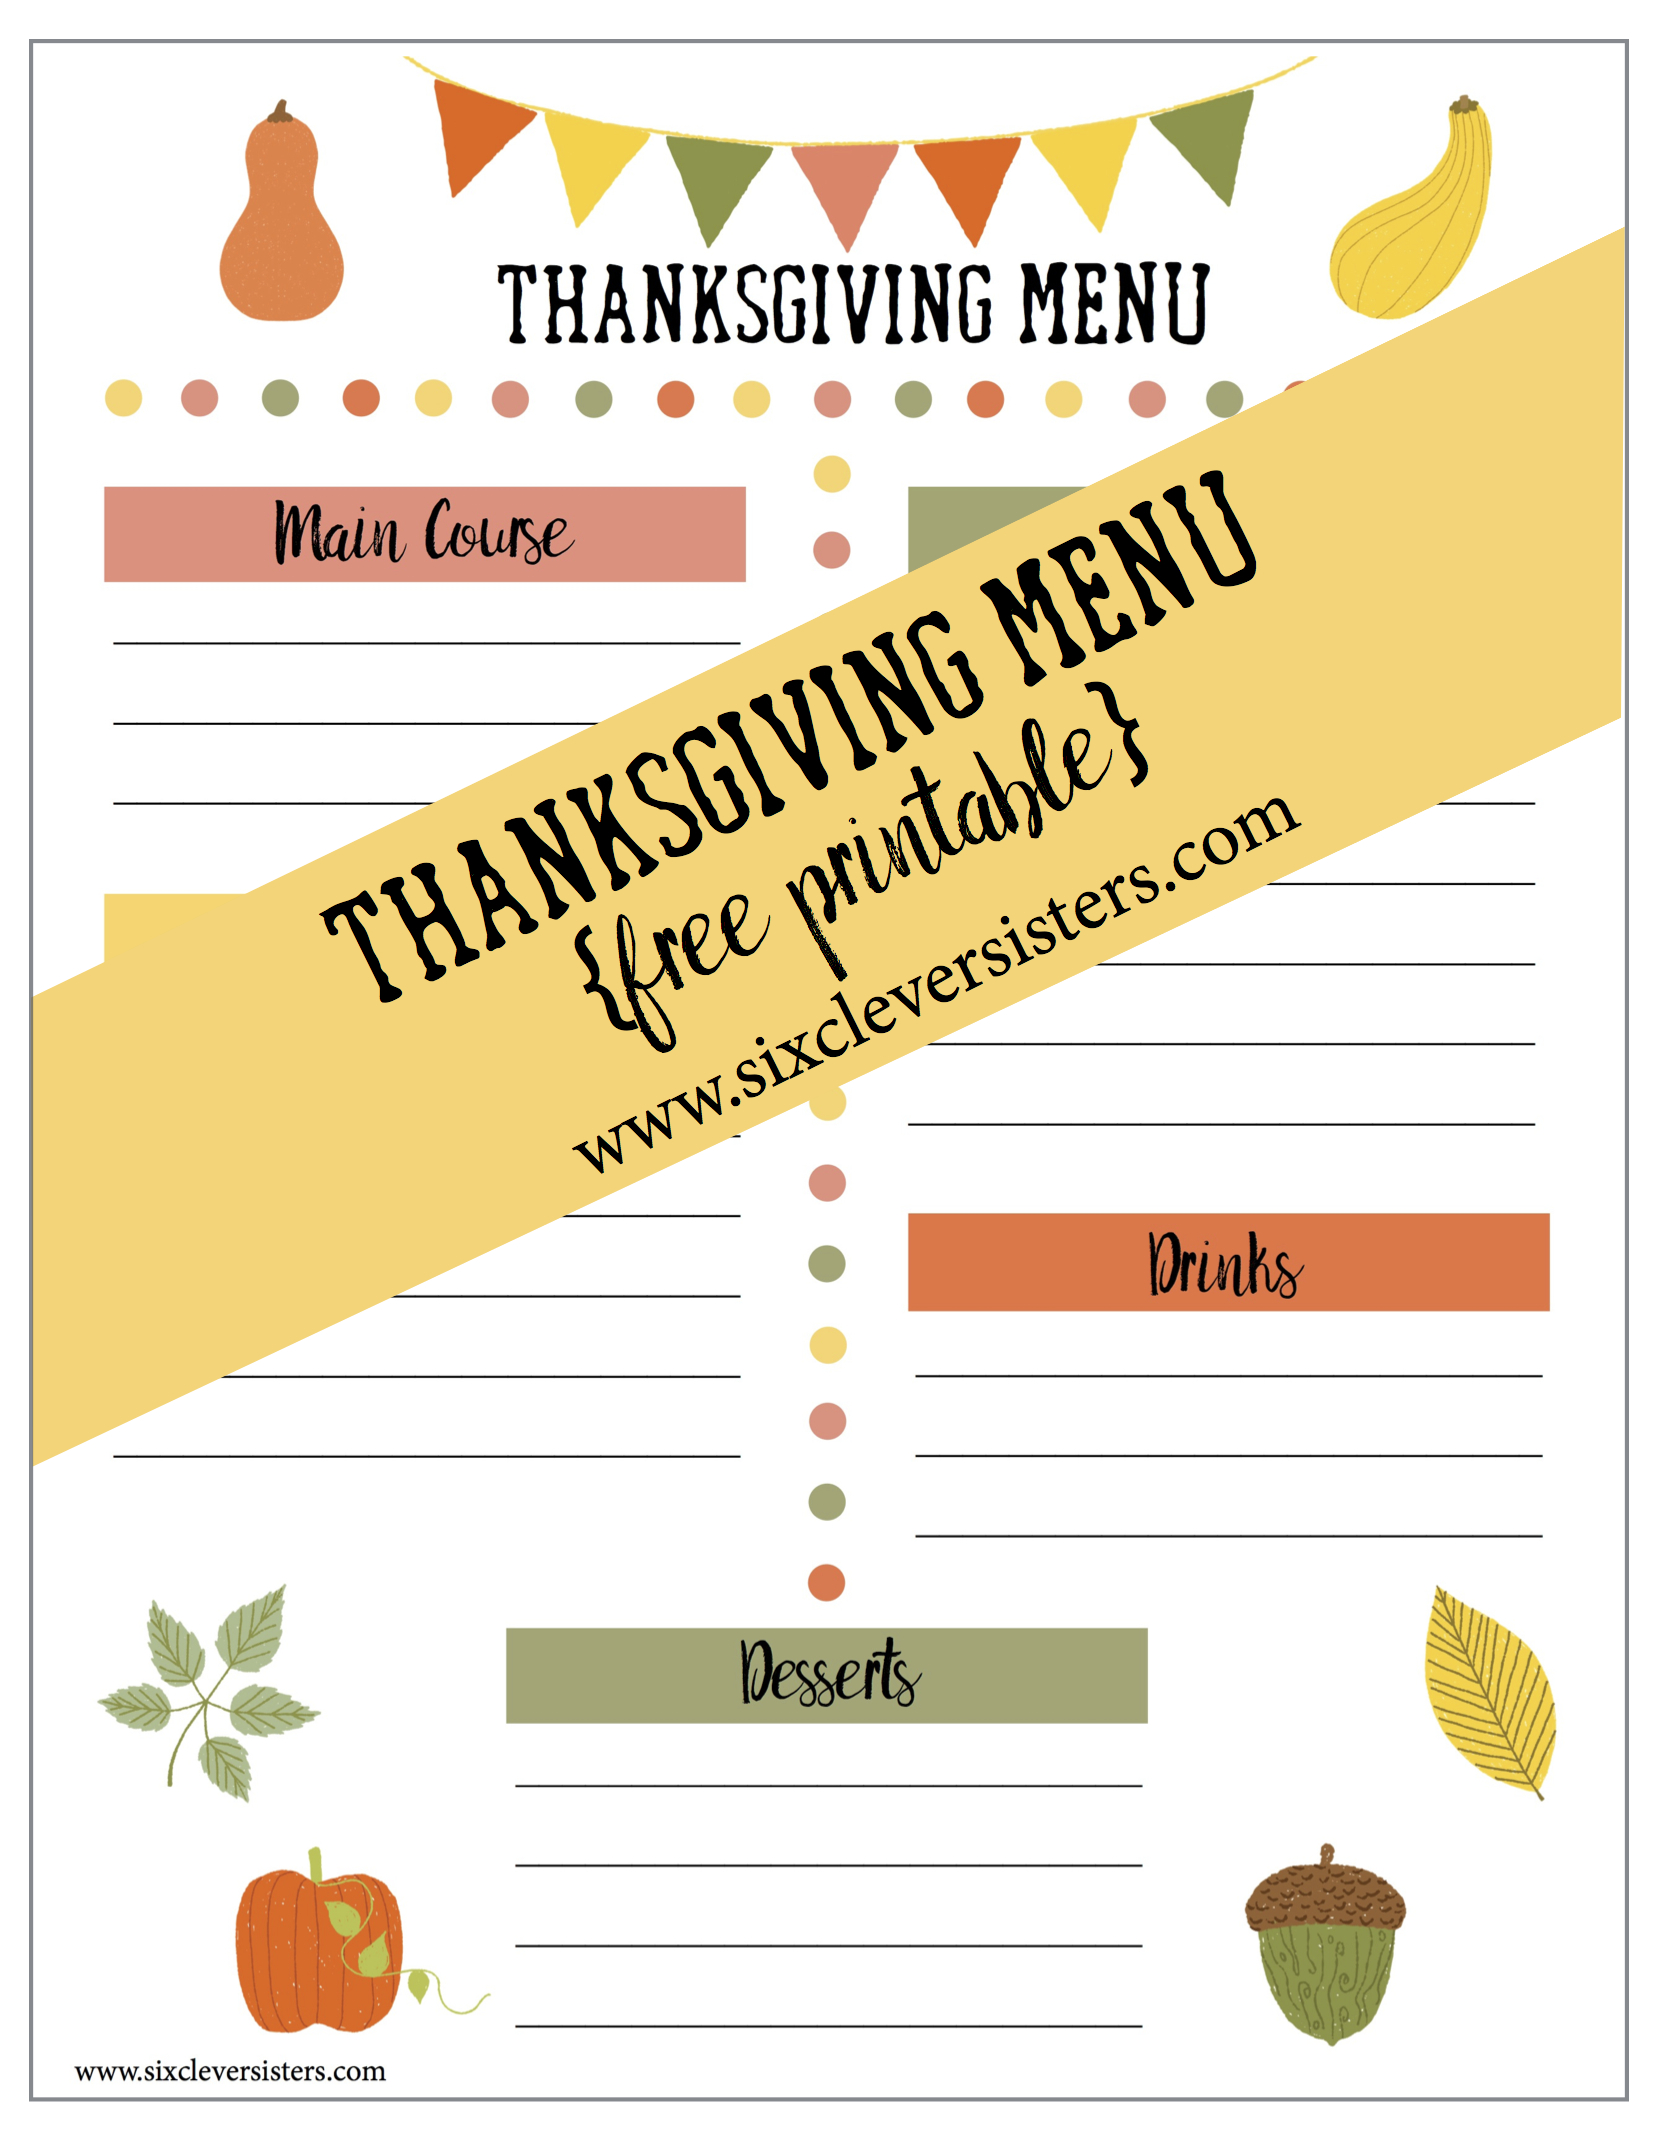 image regarding Printable Thanksgiving Menu known as Printable Thanksgiving Menu and Searching Listing - 6 Wise